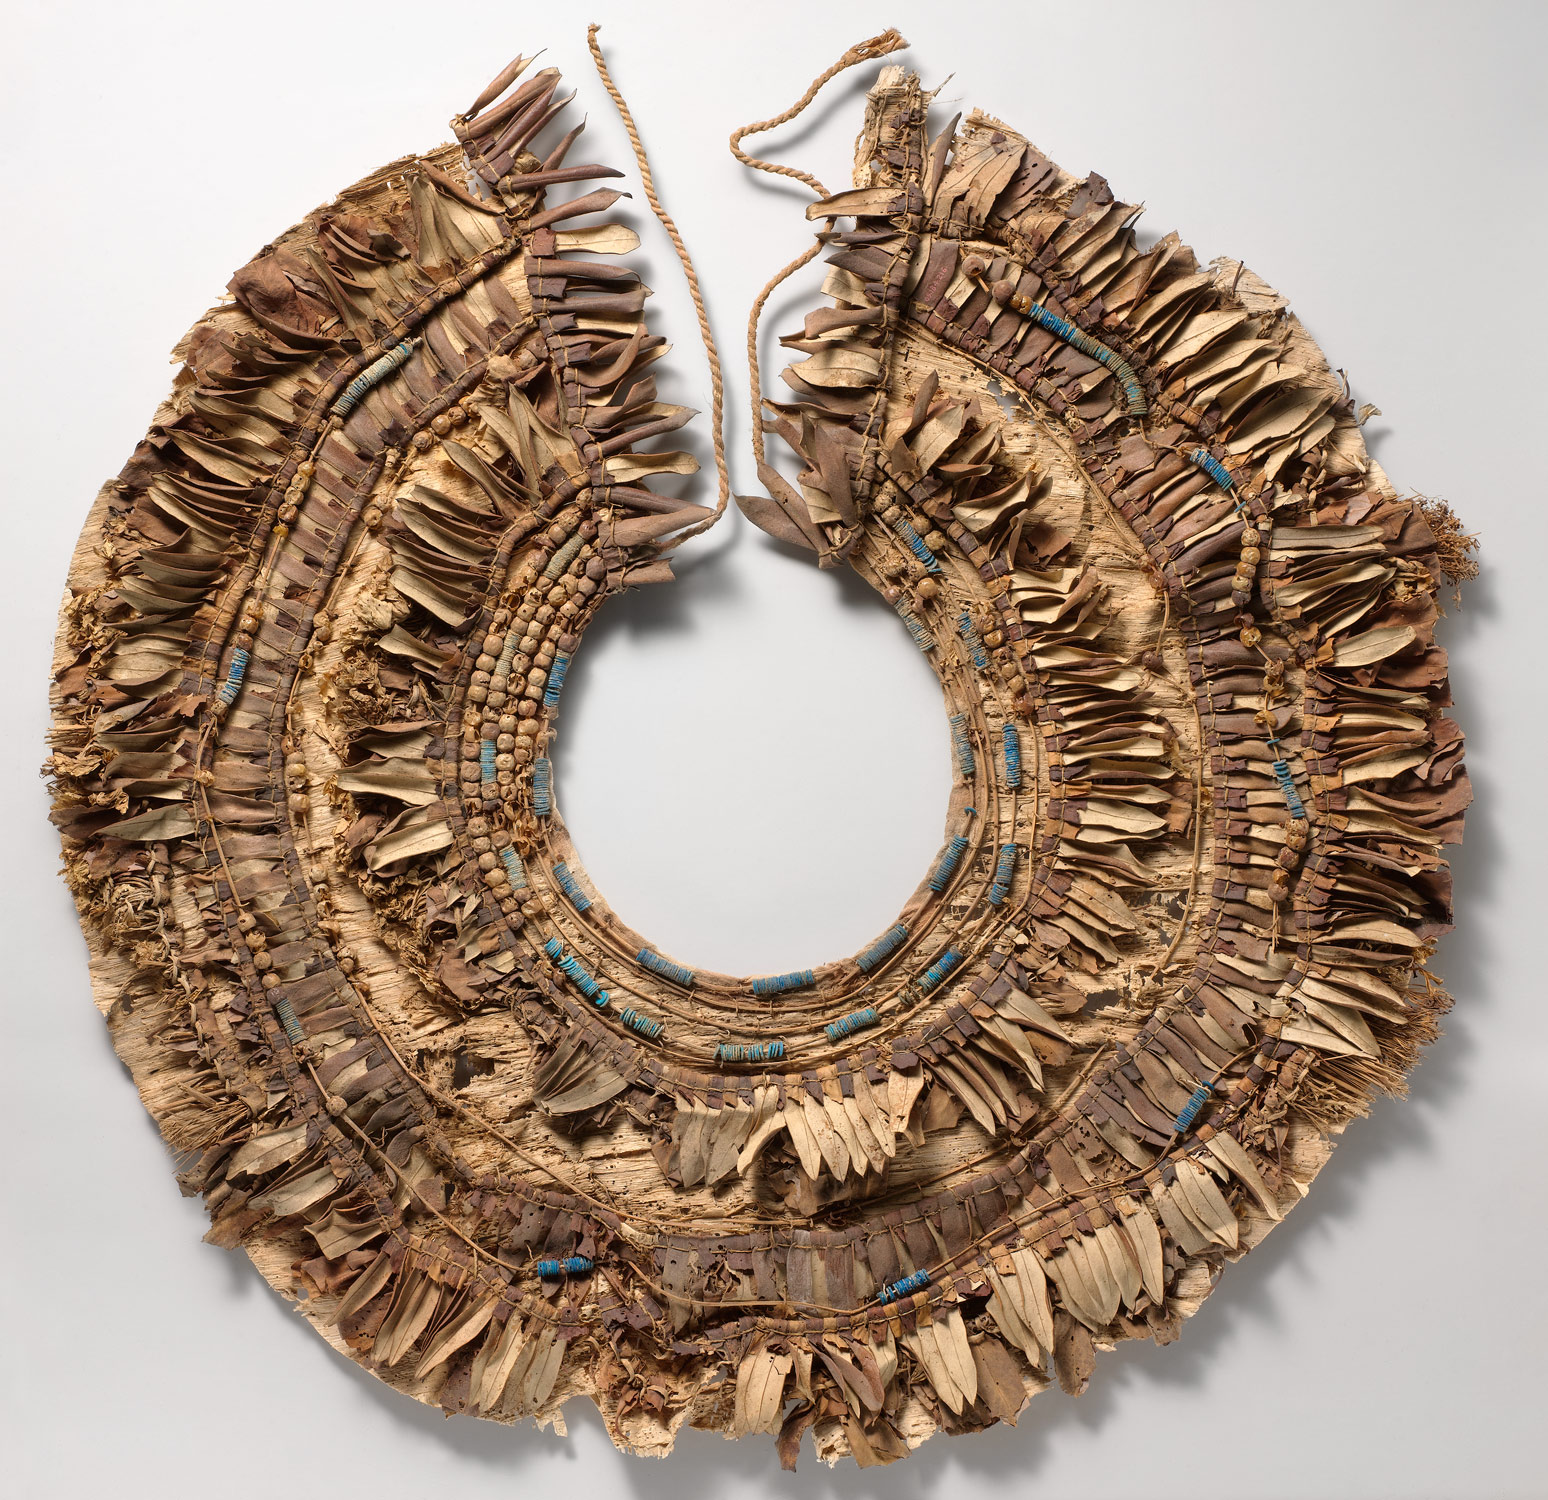 Floral collar from Tutankhamuns embalming cache